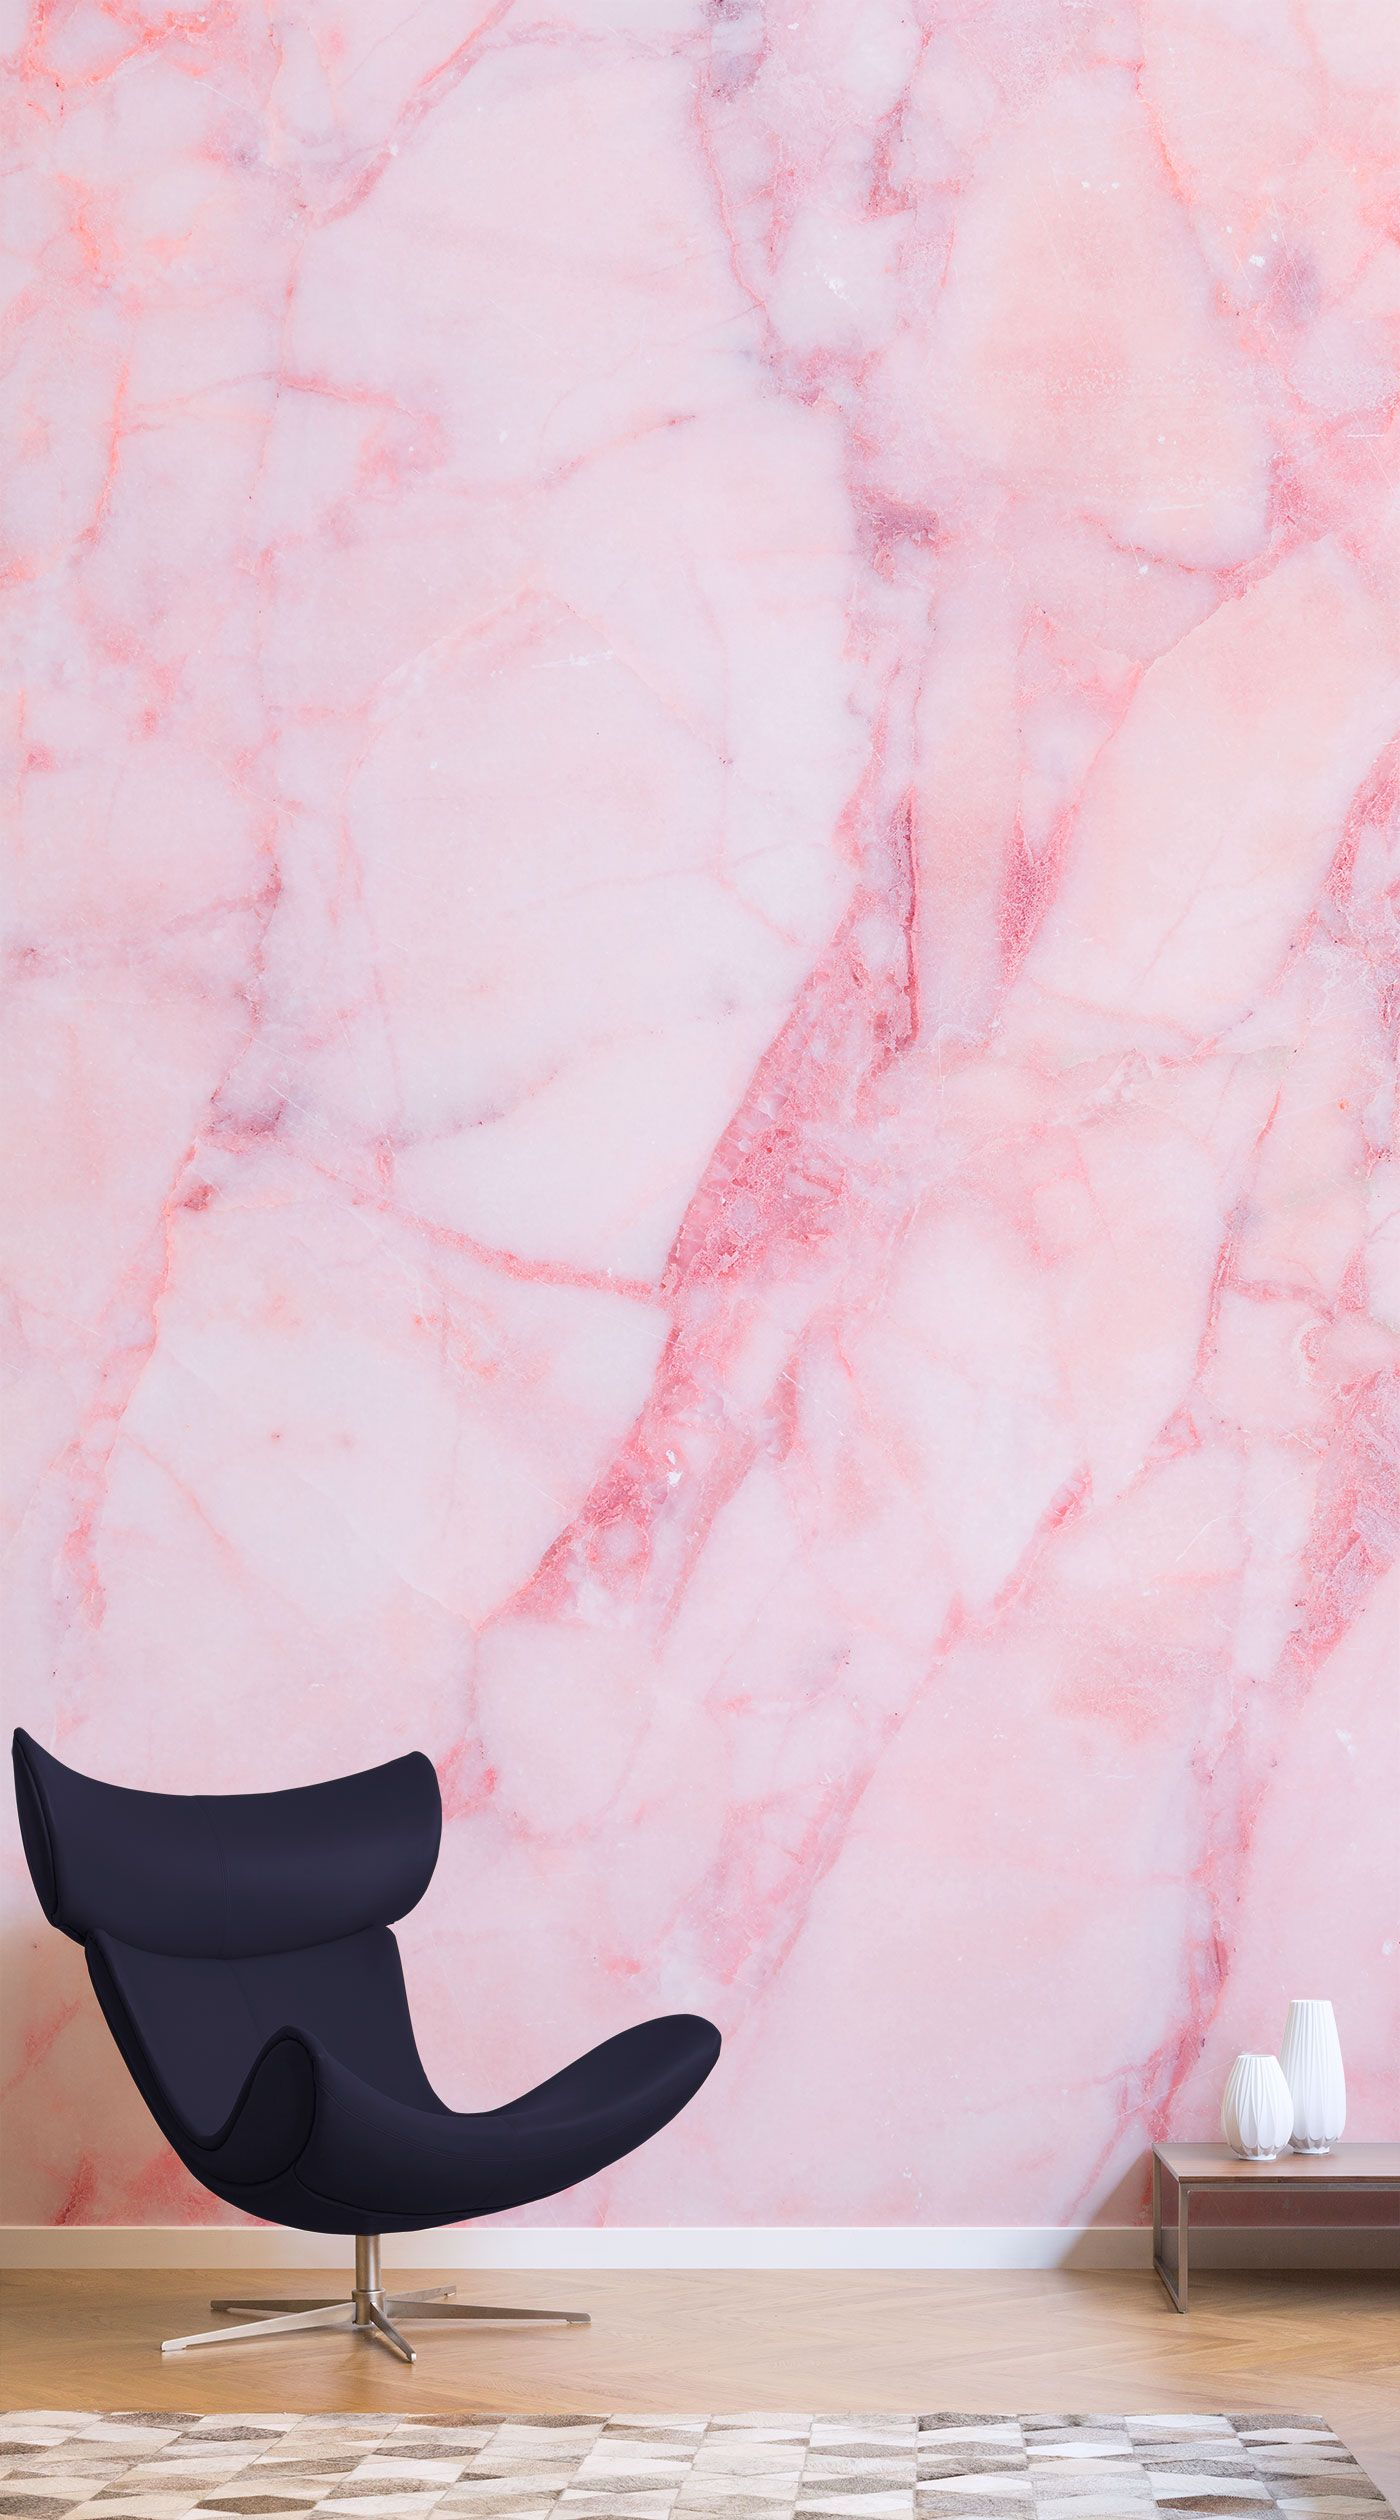 Beau Millennial Pink: How To Achieve The Hot Pink Trend With